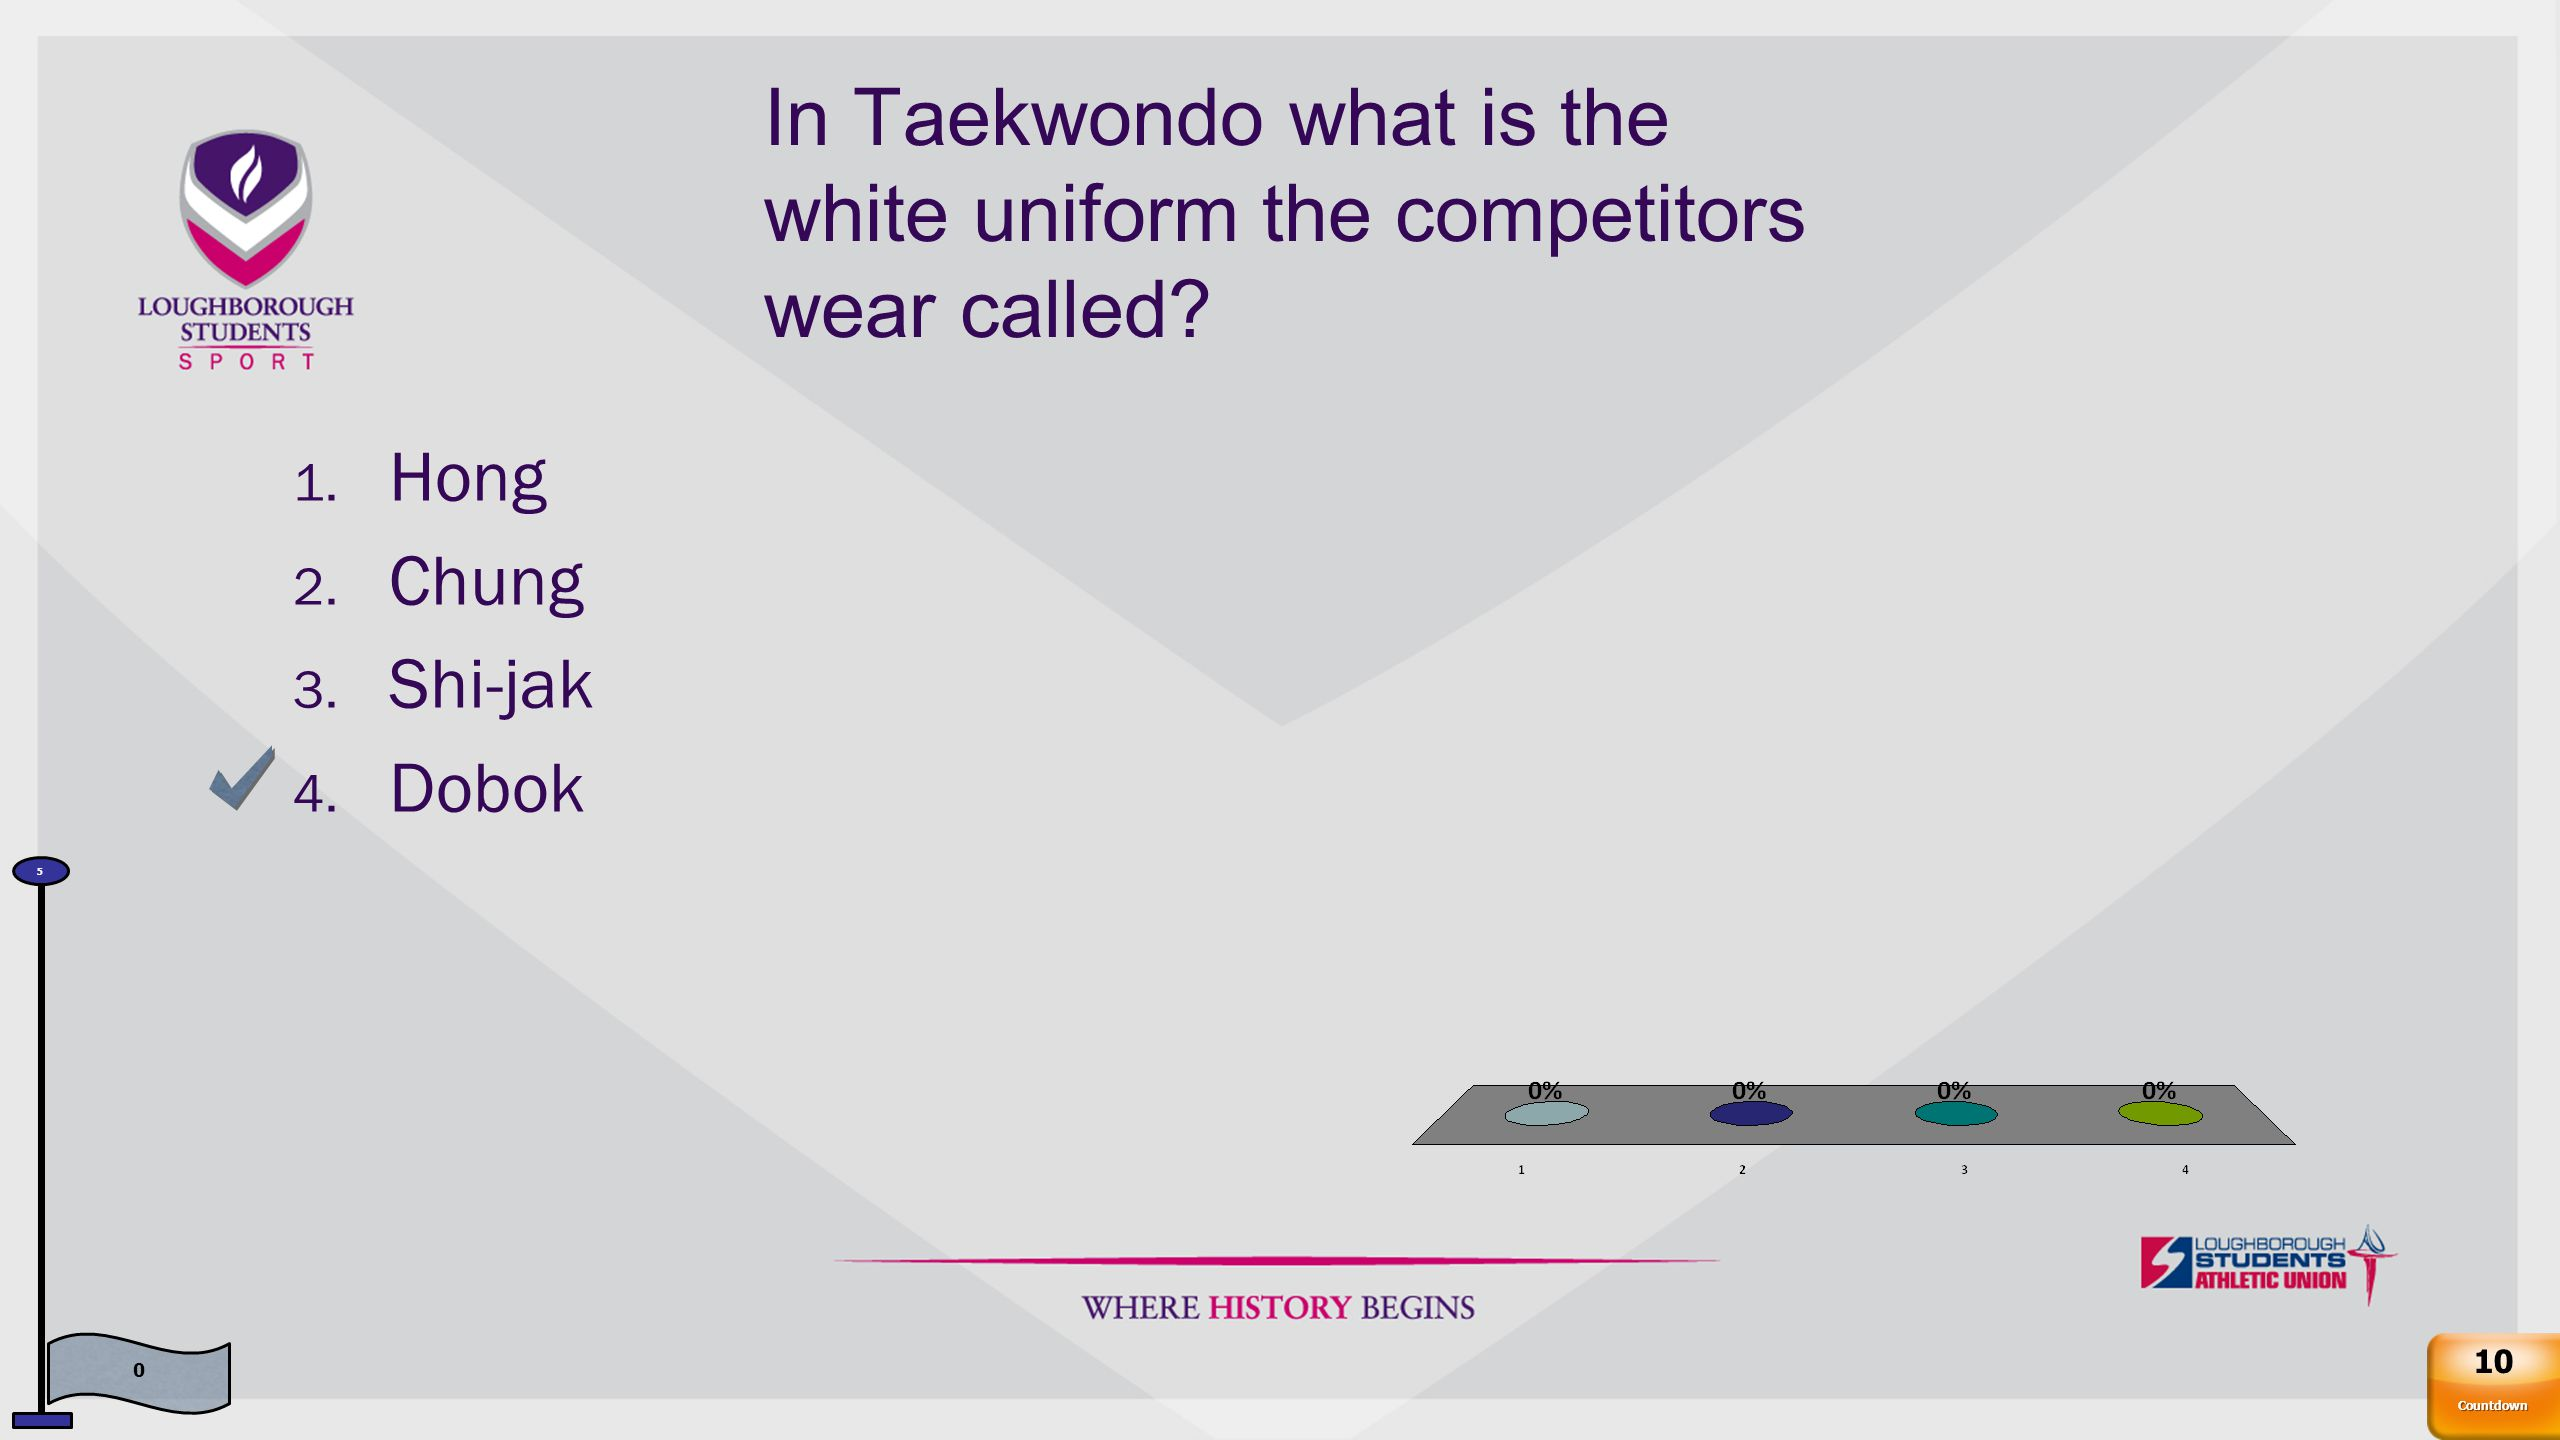 In Taekwondo what is the white uniform the competitors wear called.